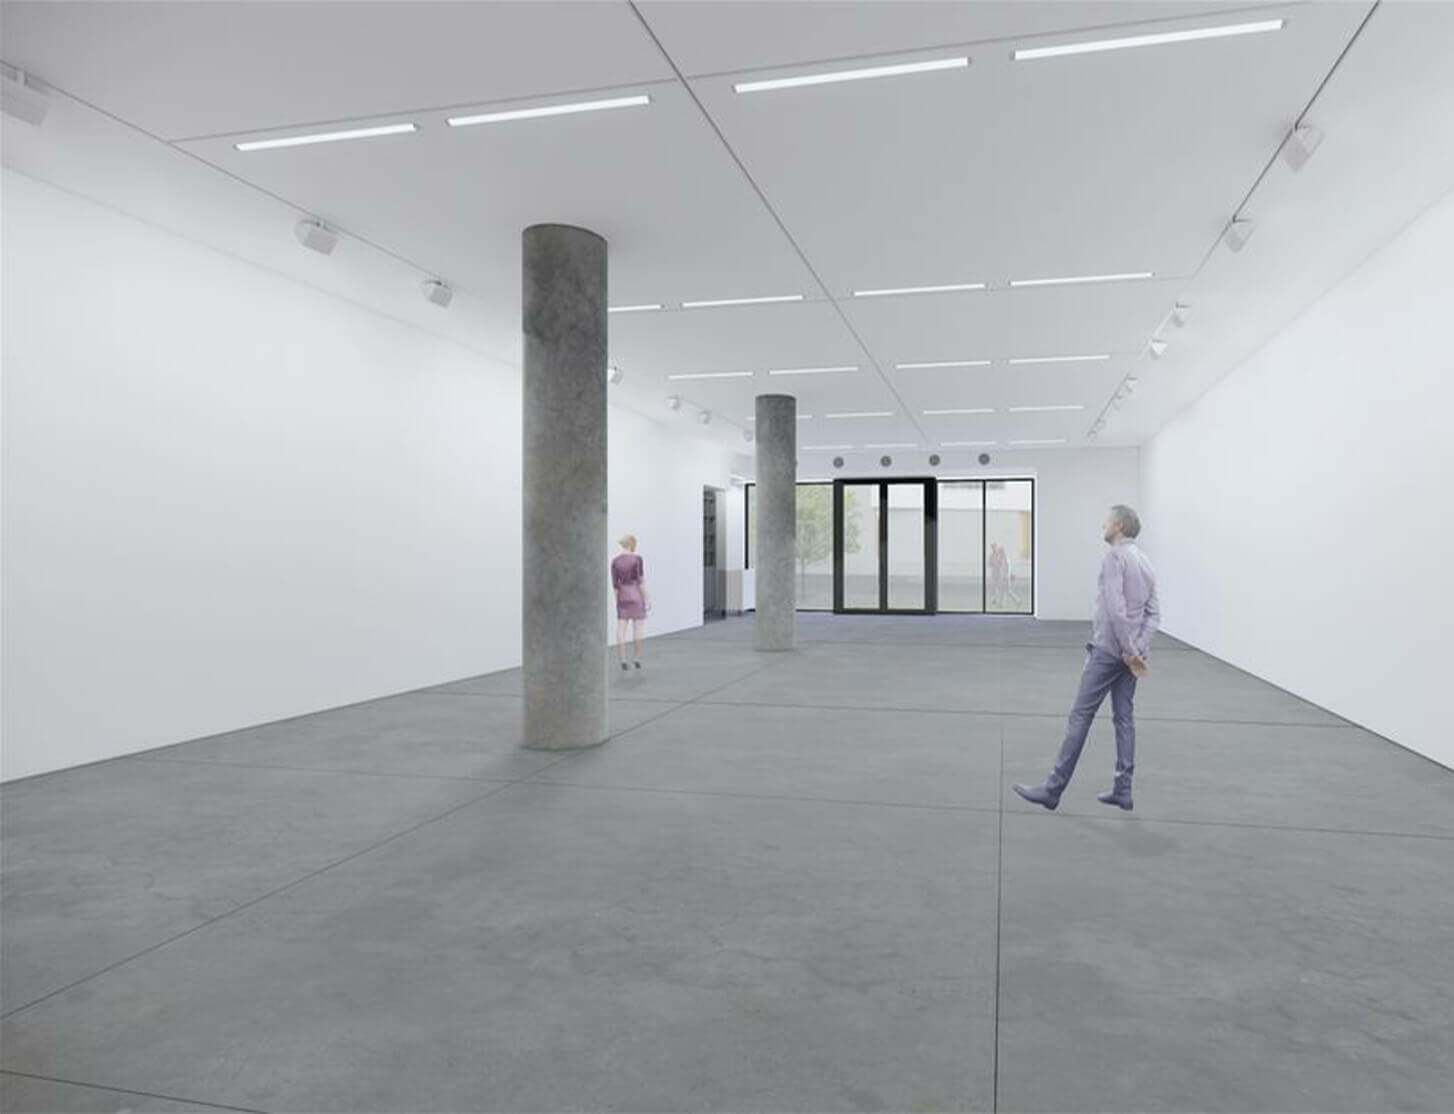 Announcing Lisson Gallery's new space in New York City